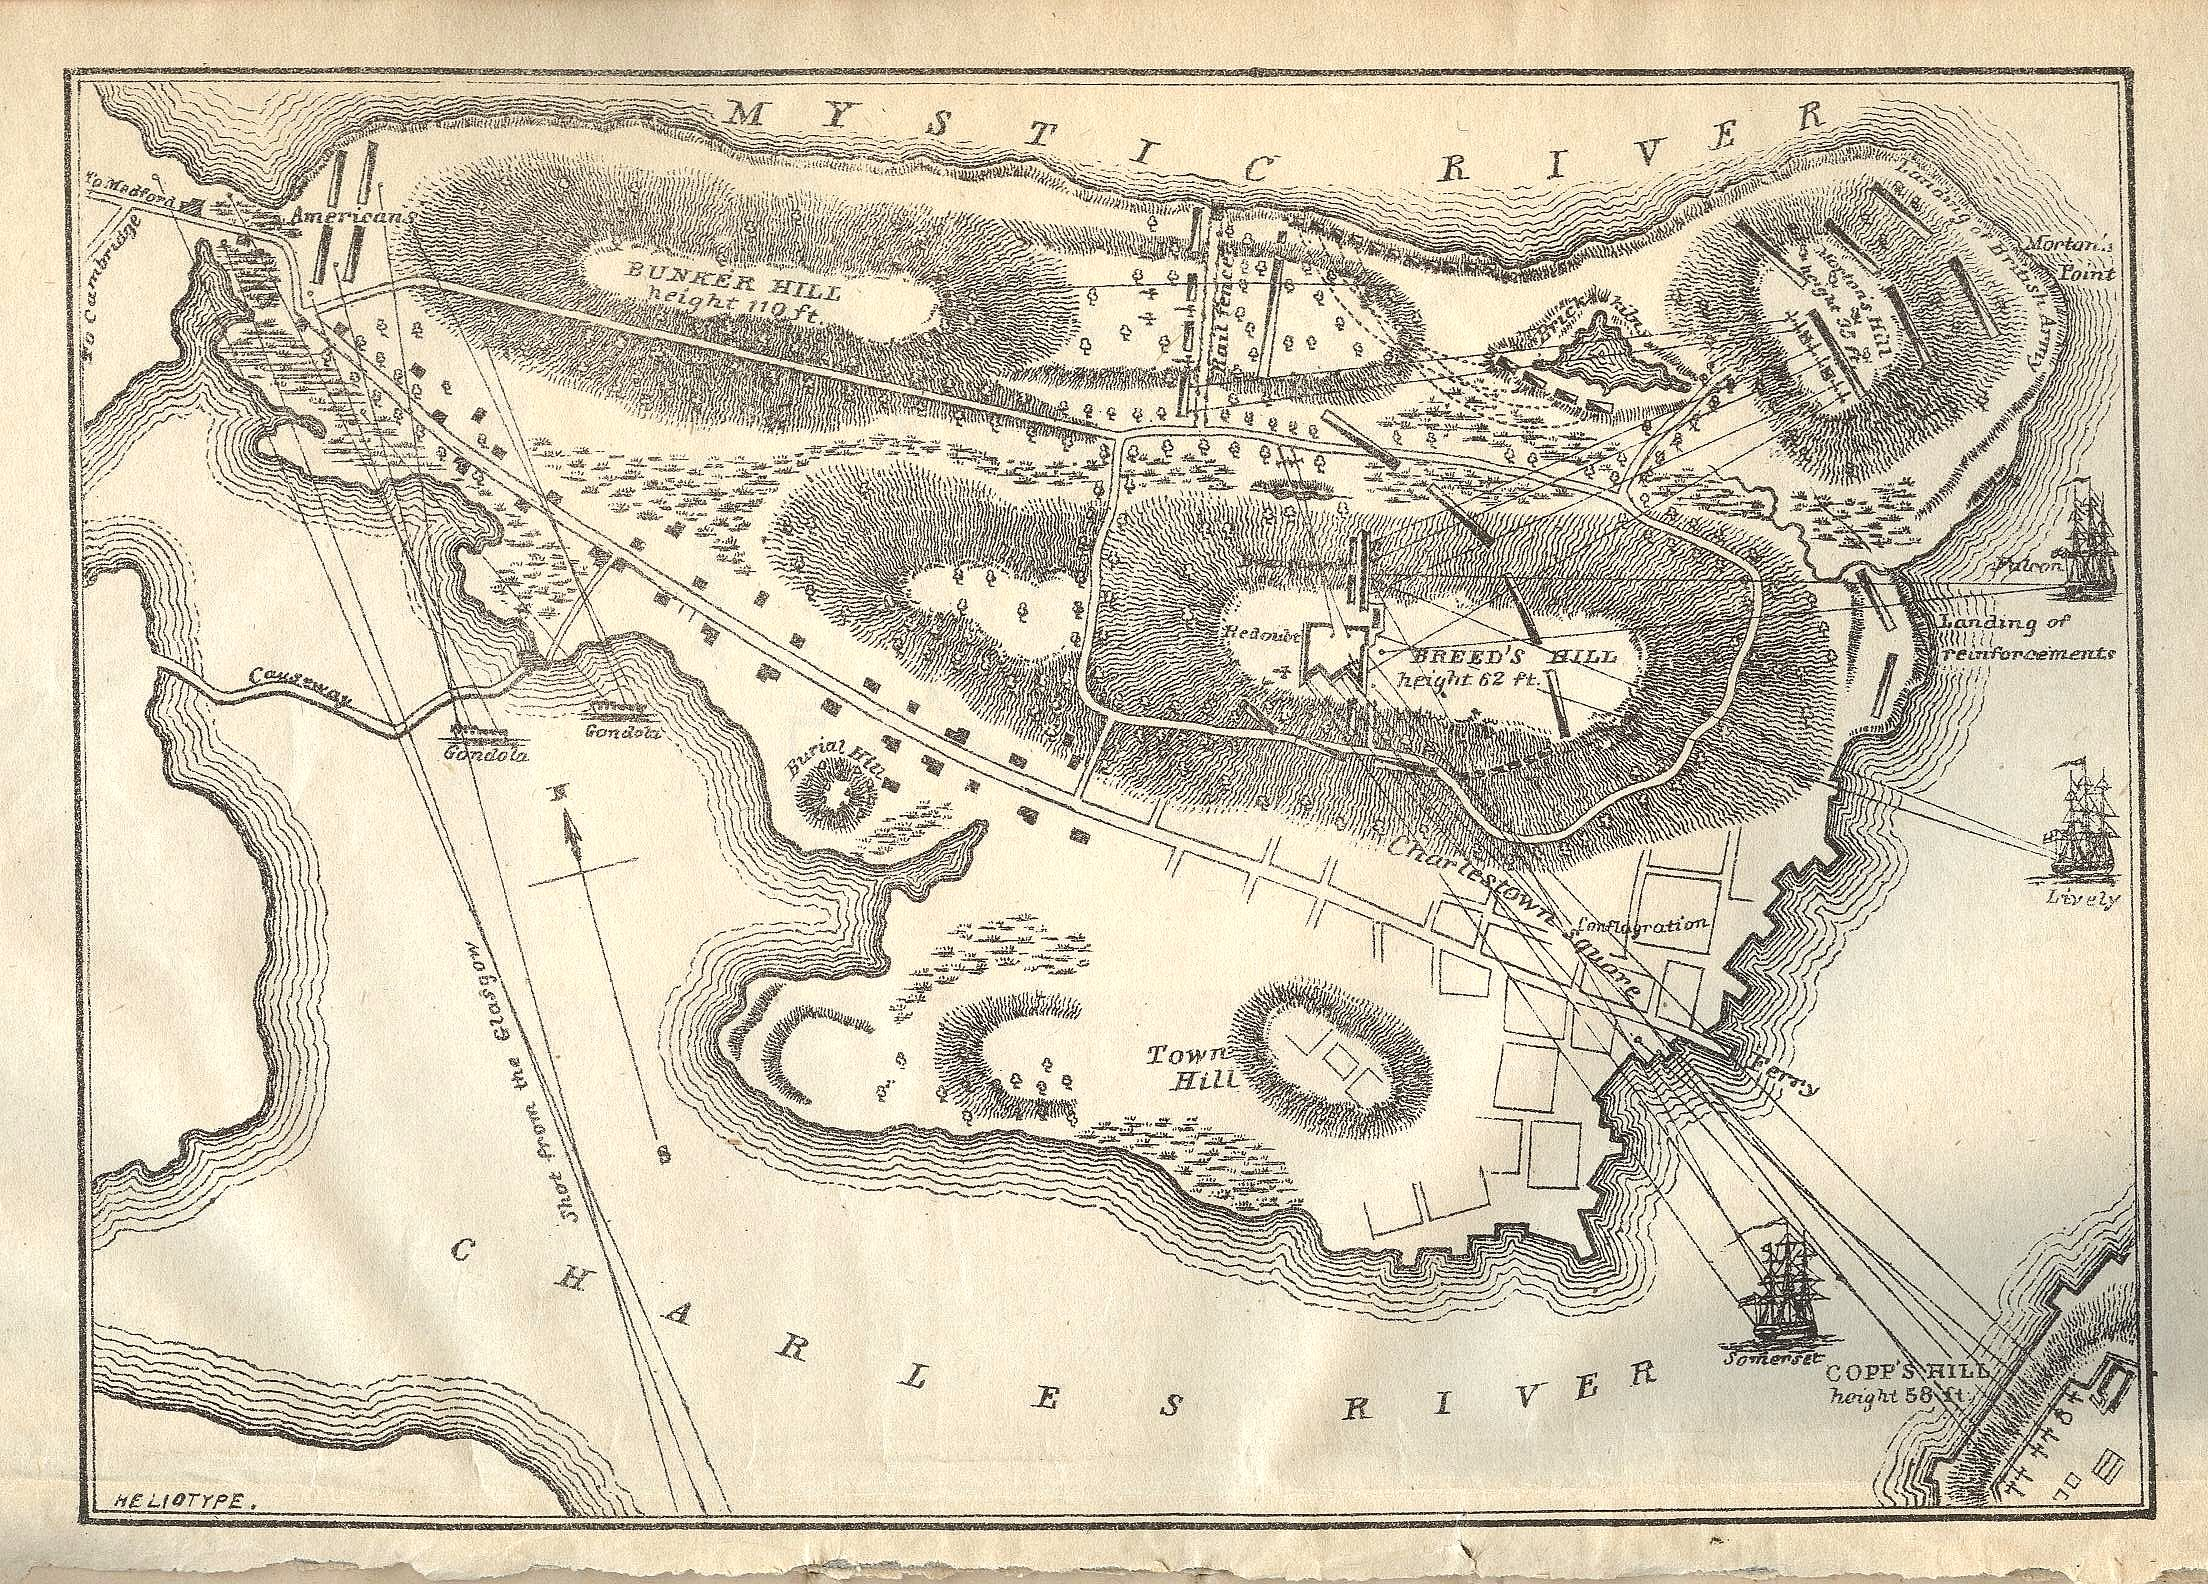 An illustrated map featuring military notes of the battle ground of Battle of Bunker Hill on Charlestown peninsula, encompassing Bunker and Breed's Hills. (George E Ellis. History of the Battle of Bunker's [Breed's Hill] on June 17,1775.... Boston:1875).